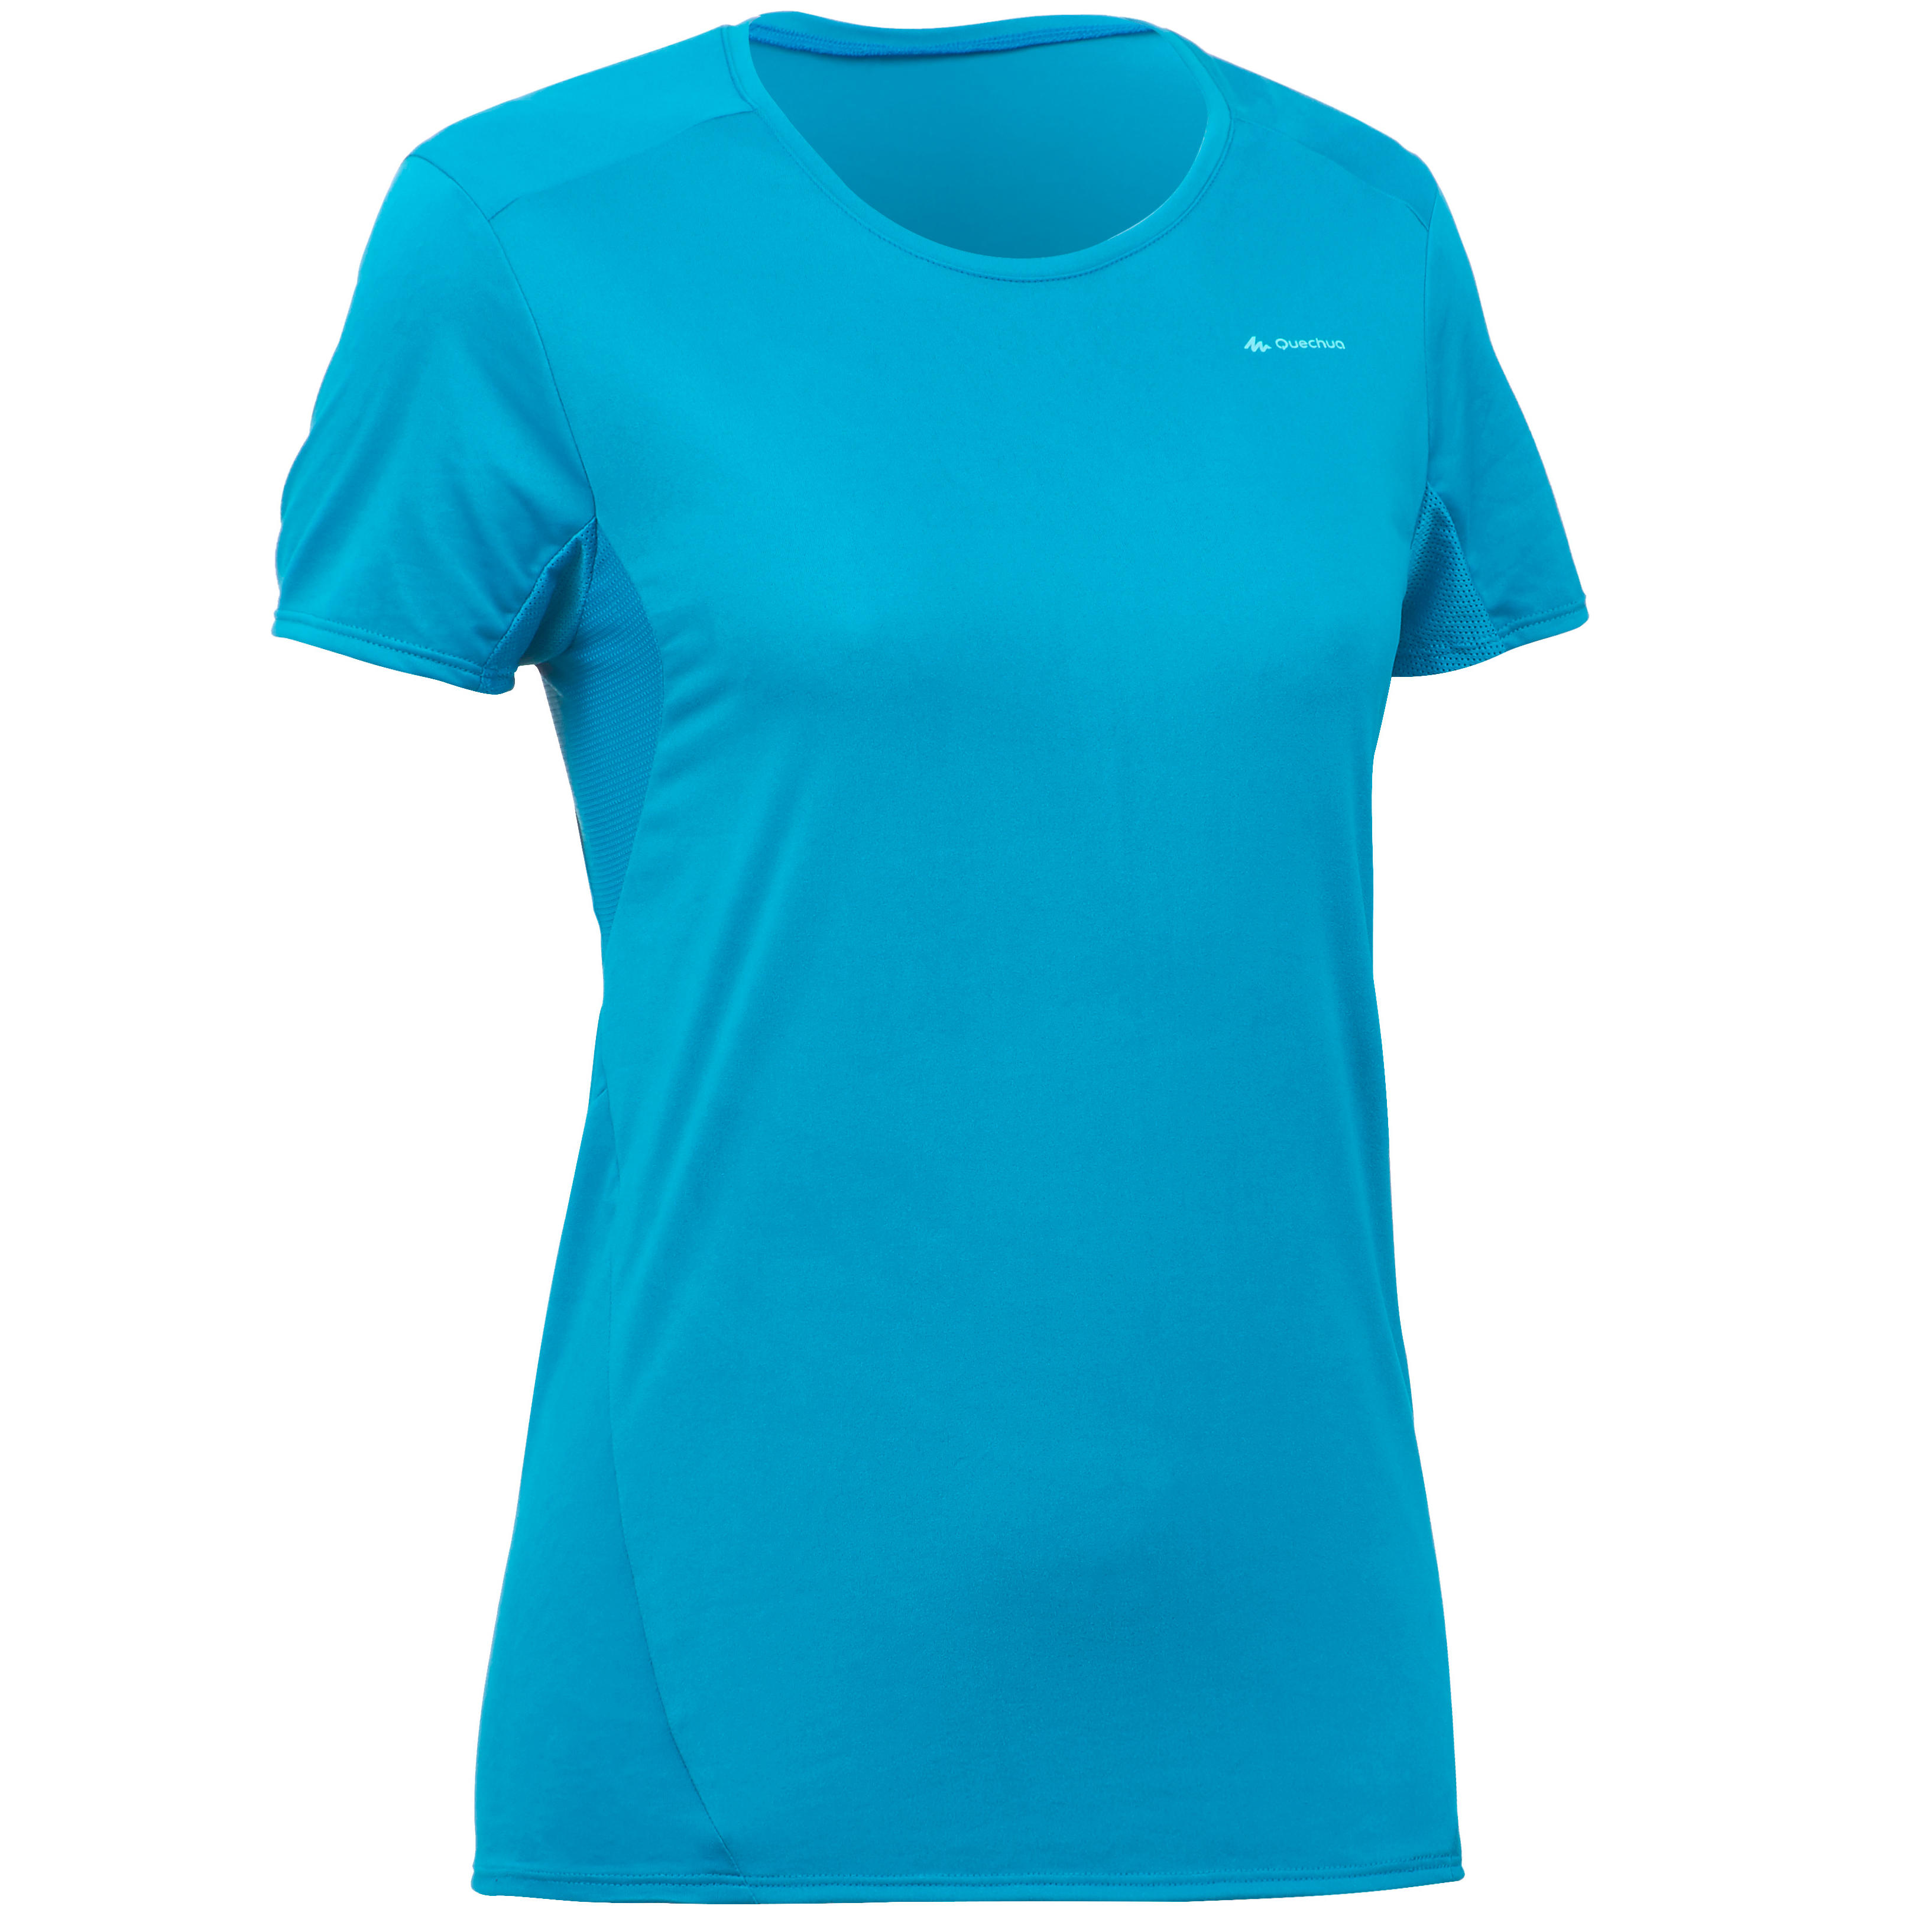 Women's short-sleeved MH100 mountain hiking t-shirt - Turquoise Blue